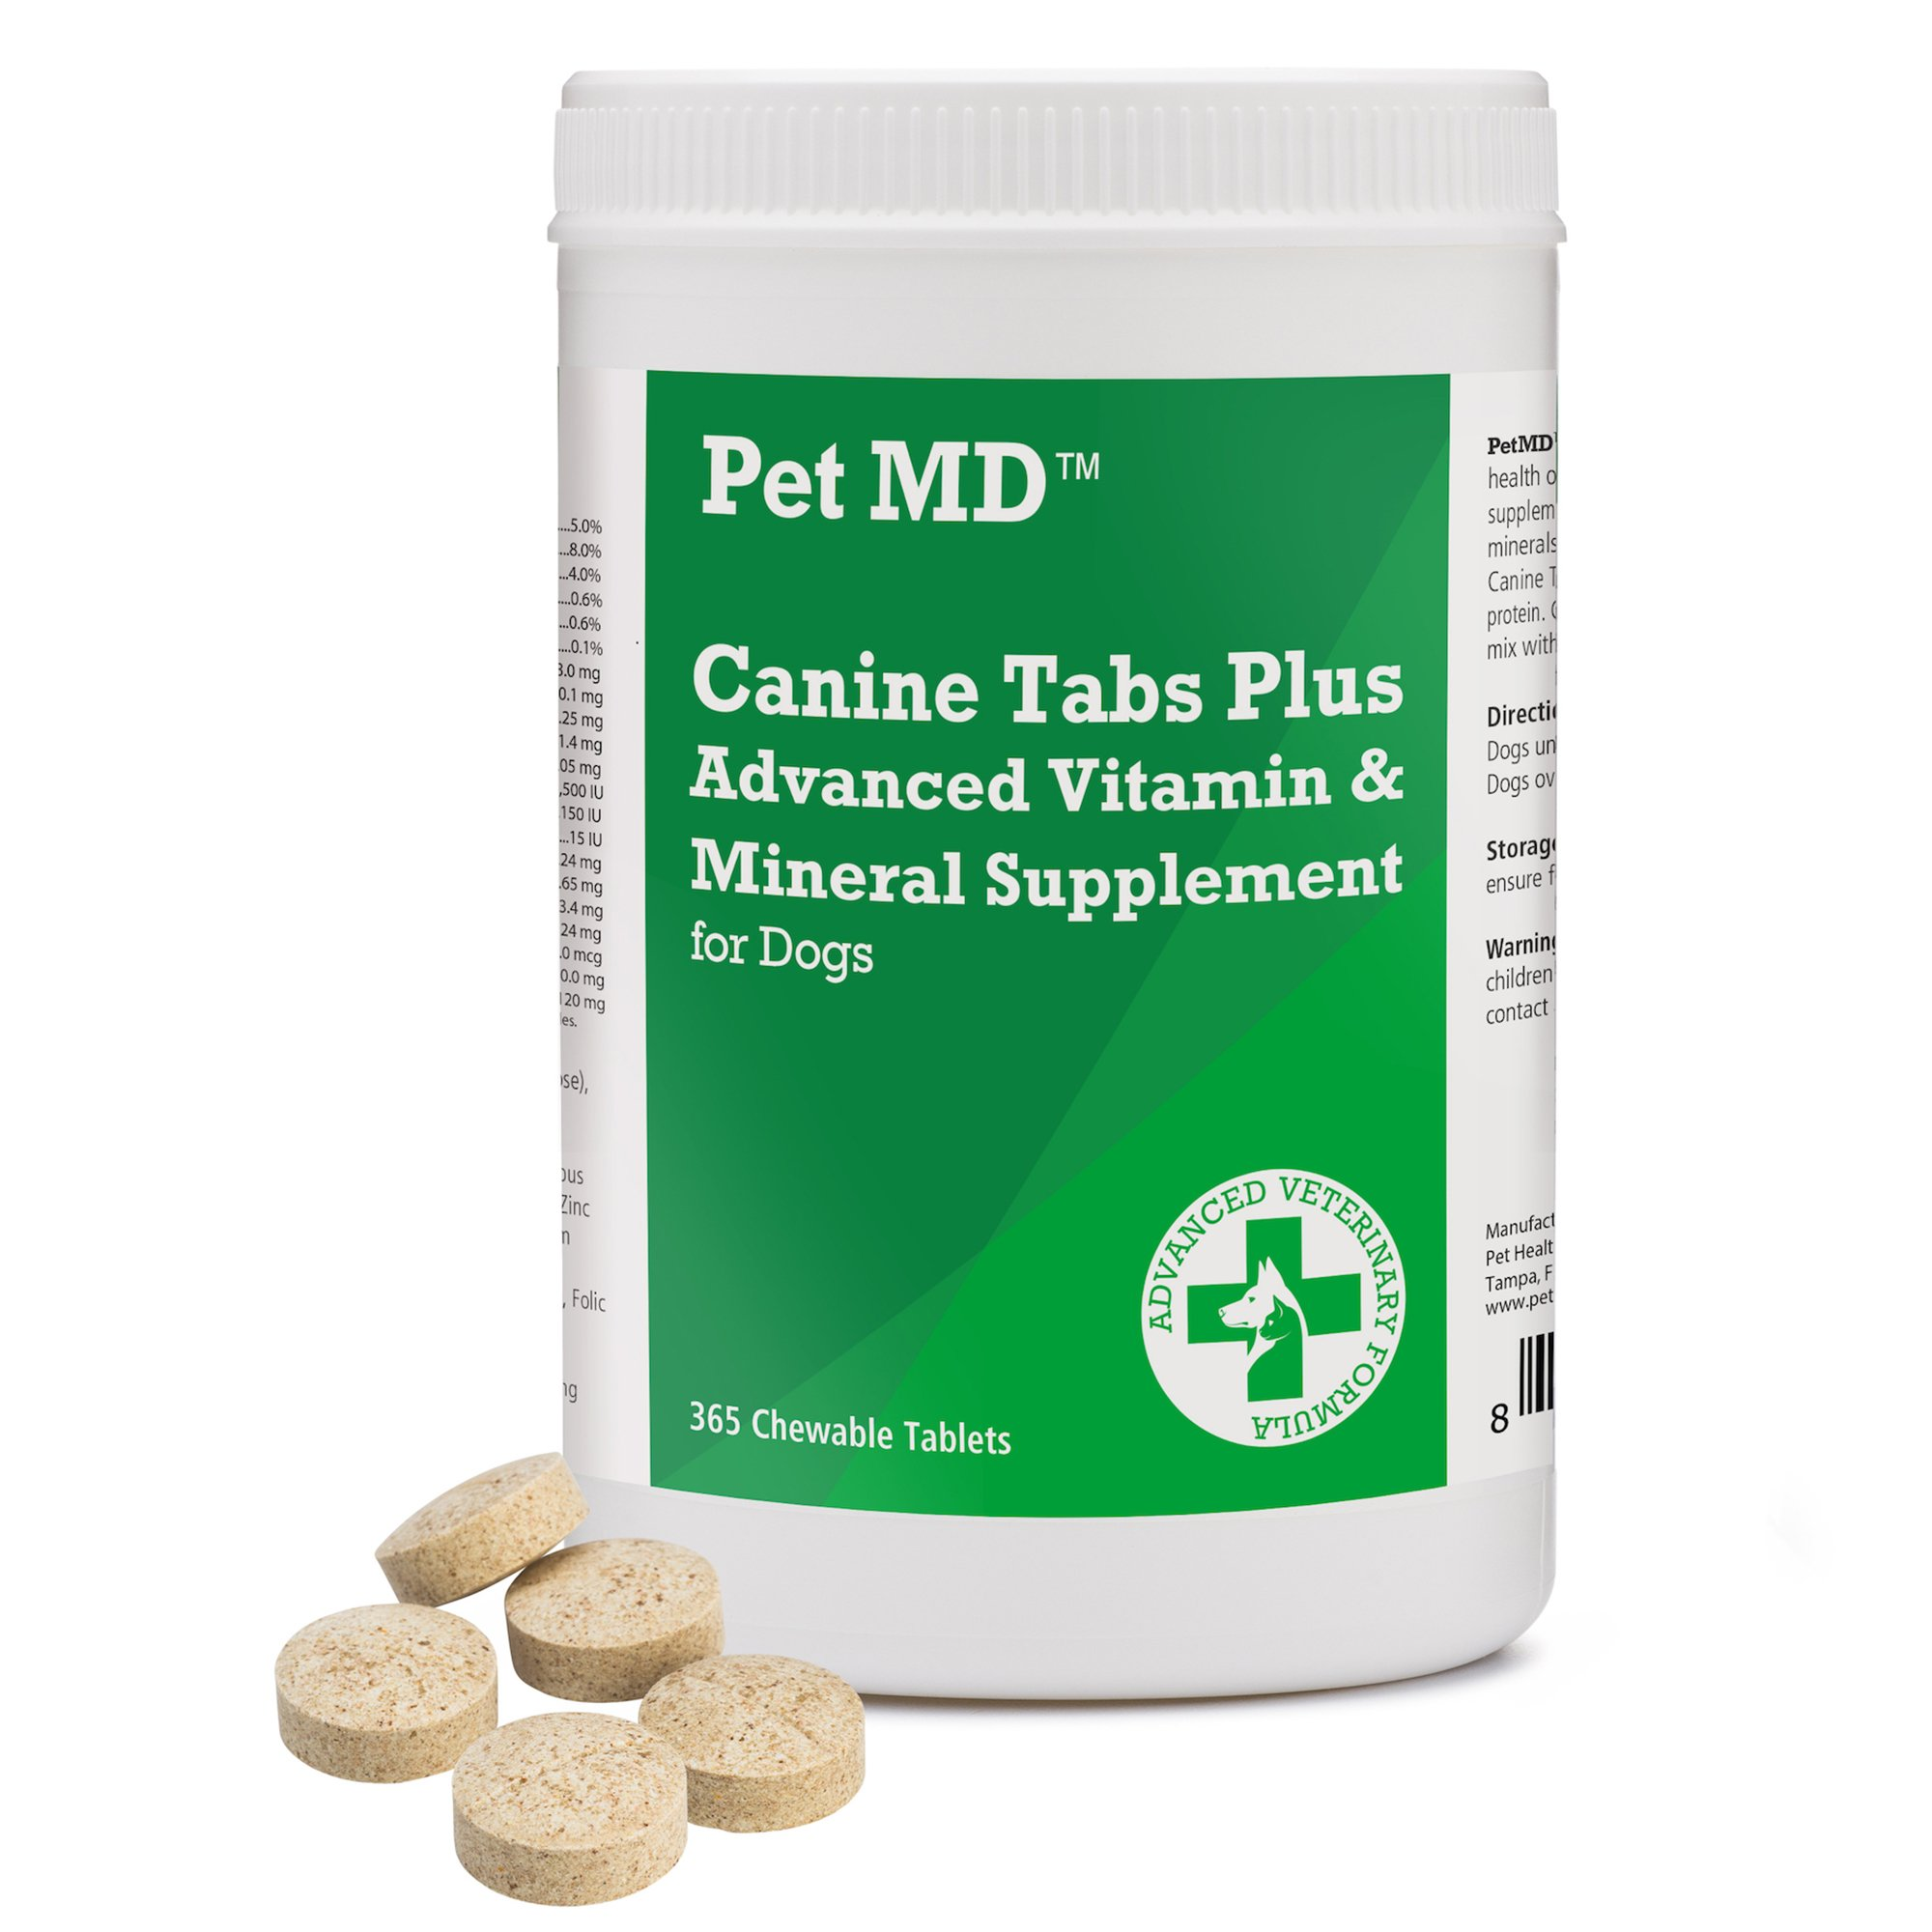 Pet MD - Canine Tabs Plus 365 Count - Advanced Multivitamins for Dogs - Natural Daily Vitamin and Mineral Nutritional Supplement - Liver Flavored Chewable Tablets by Pet MD